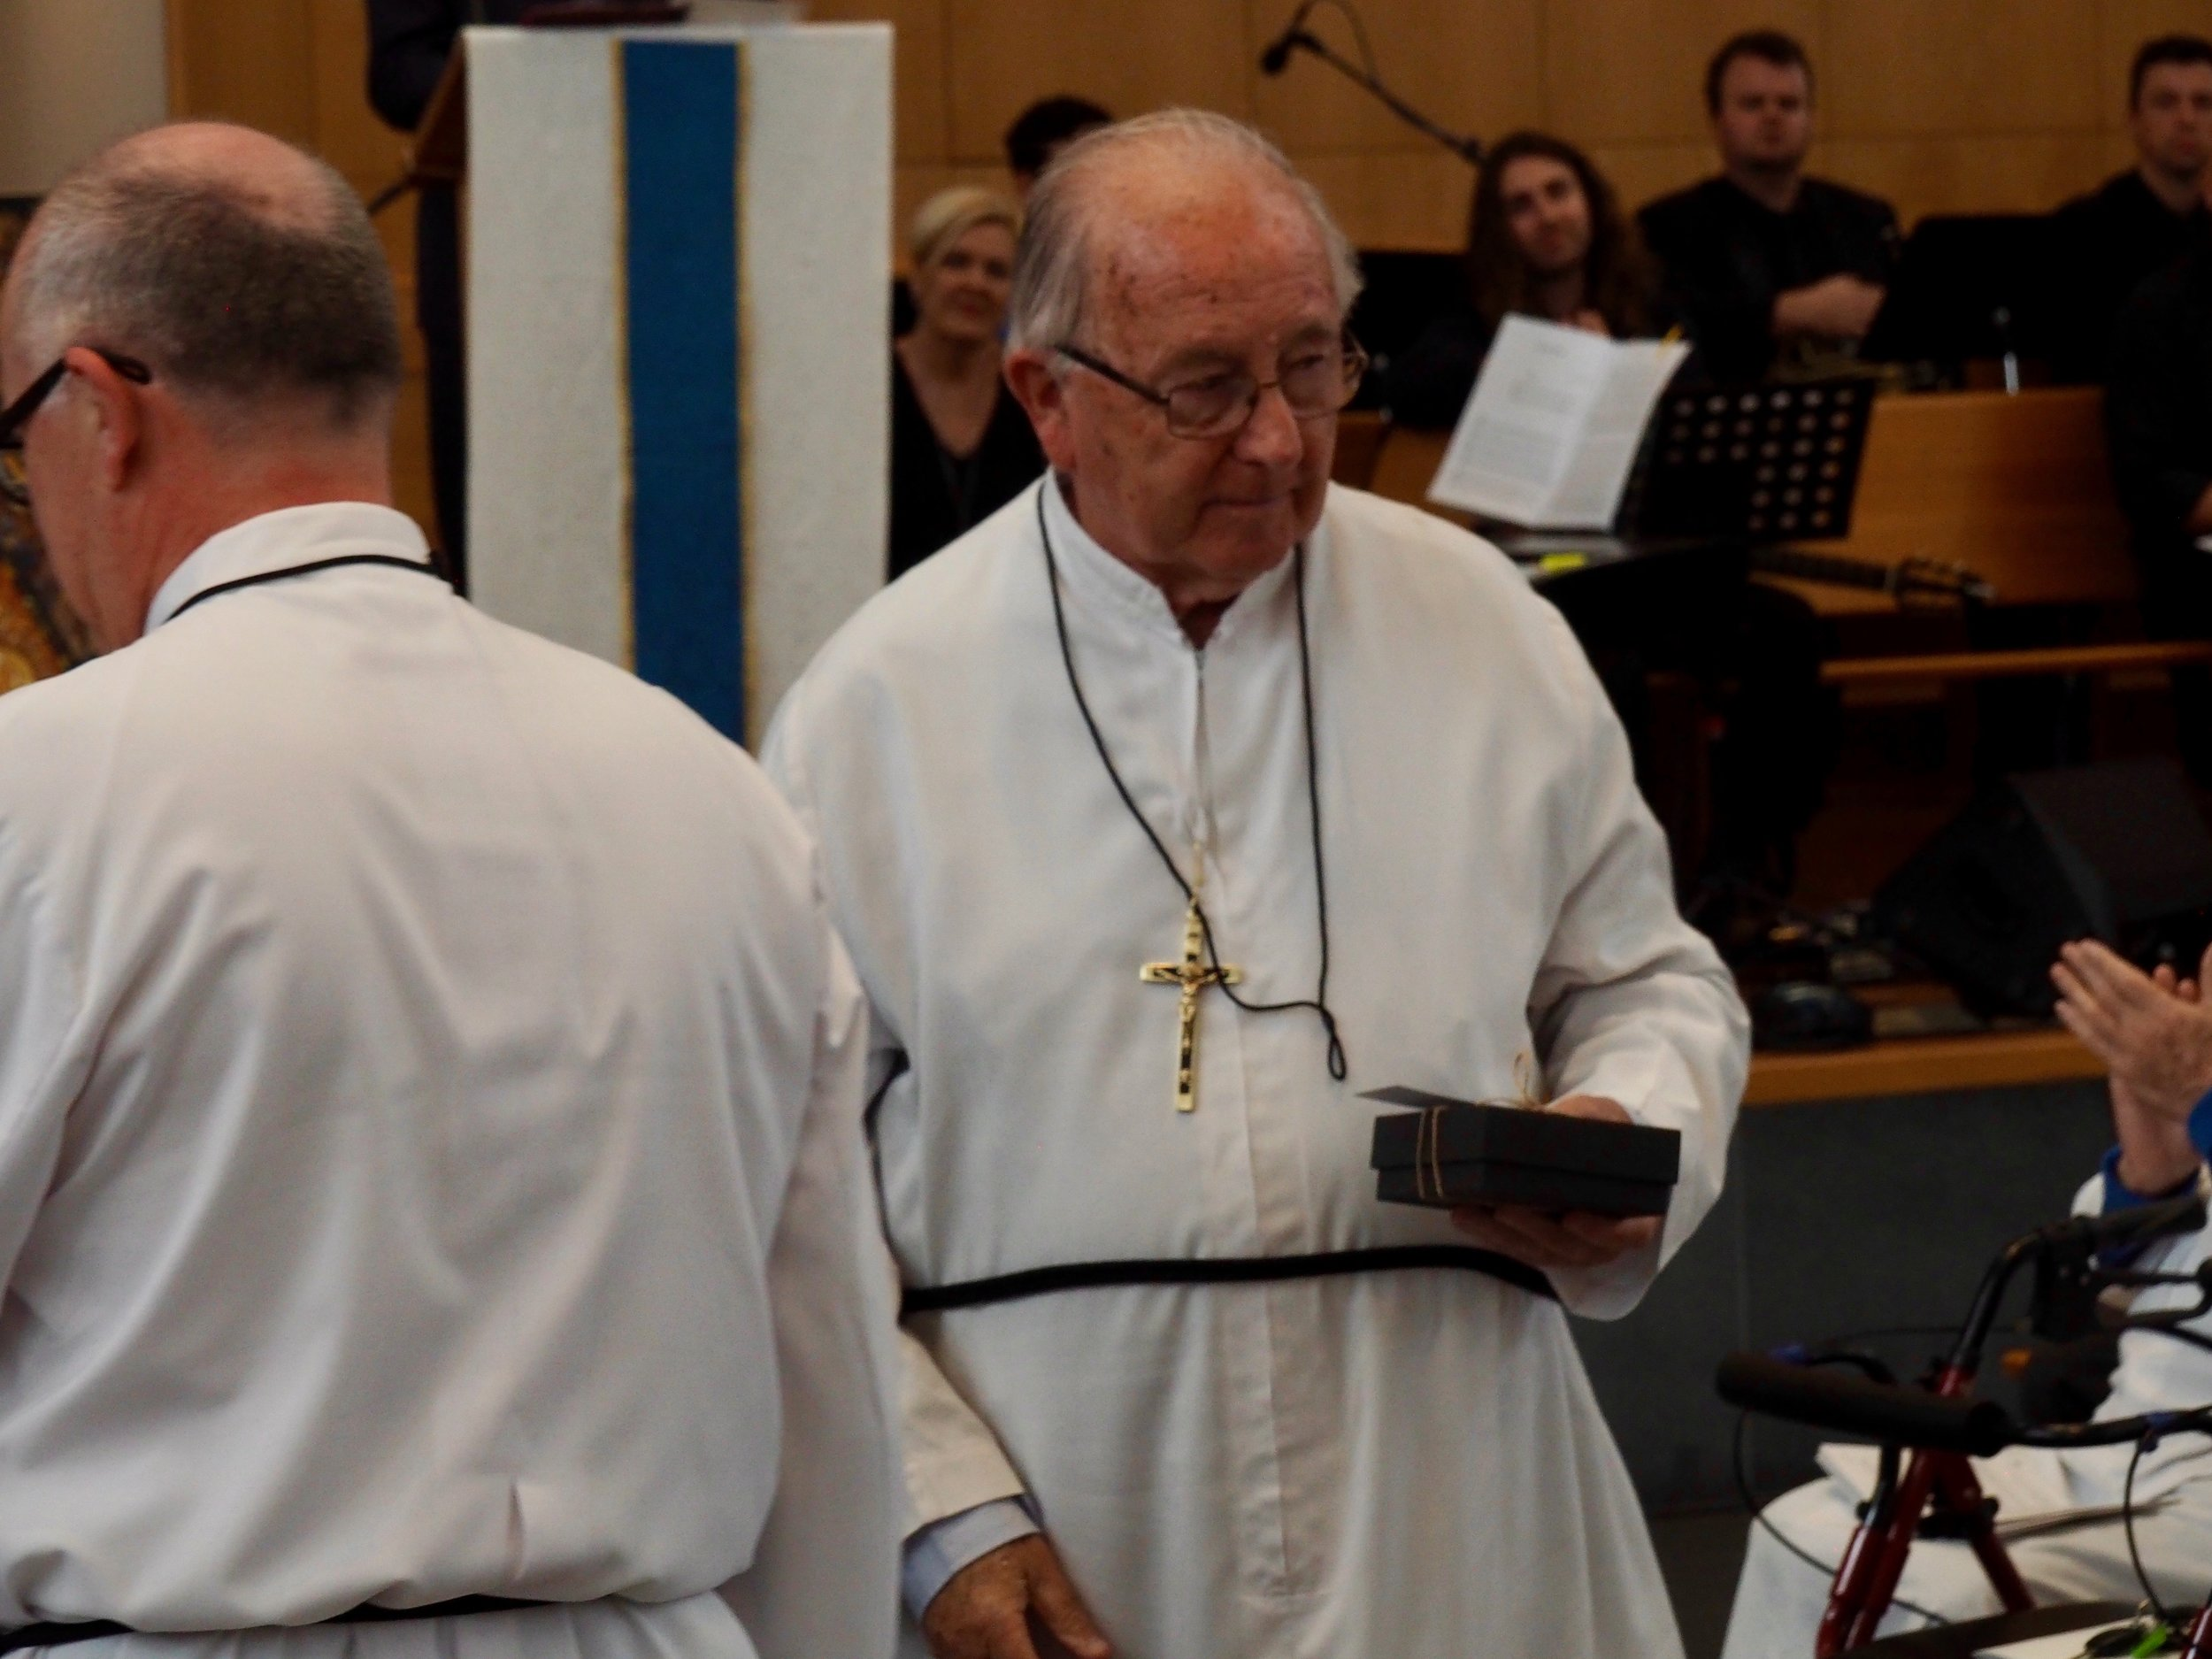 Bicentenary Mass Sydney 12 Aug 2017 Photos by Paul Harris 00080.jpg